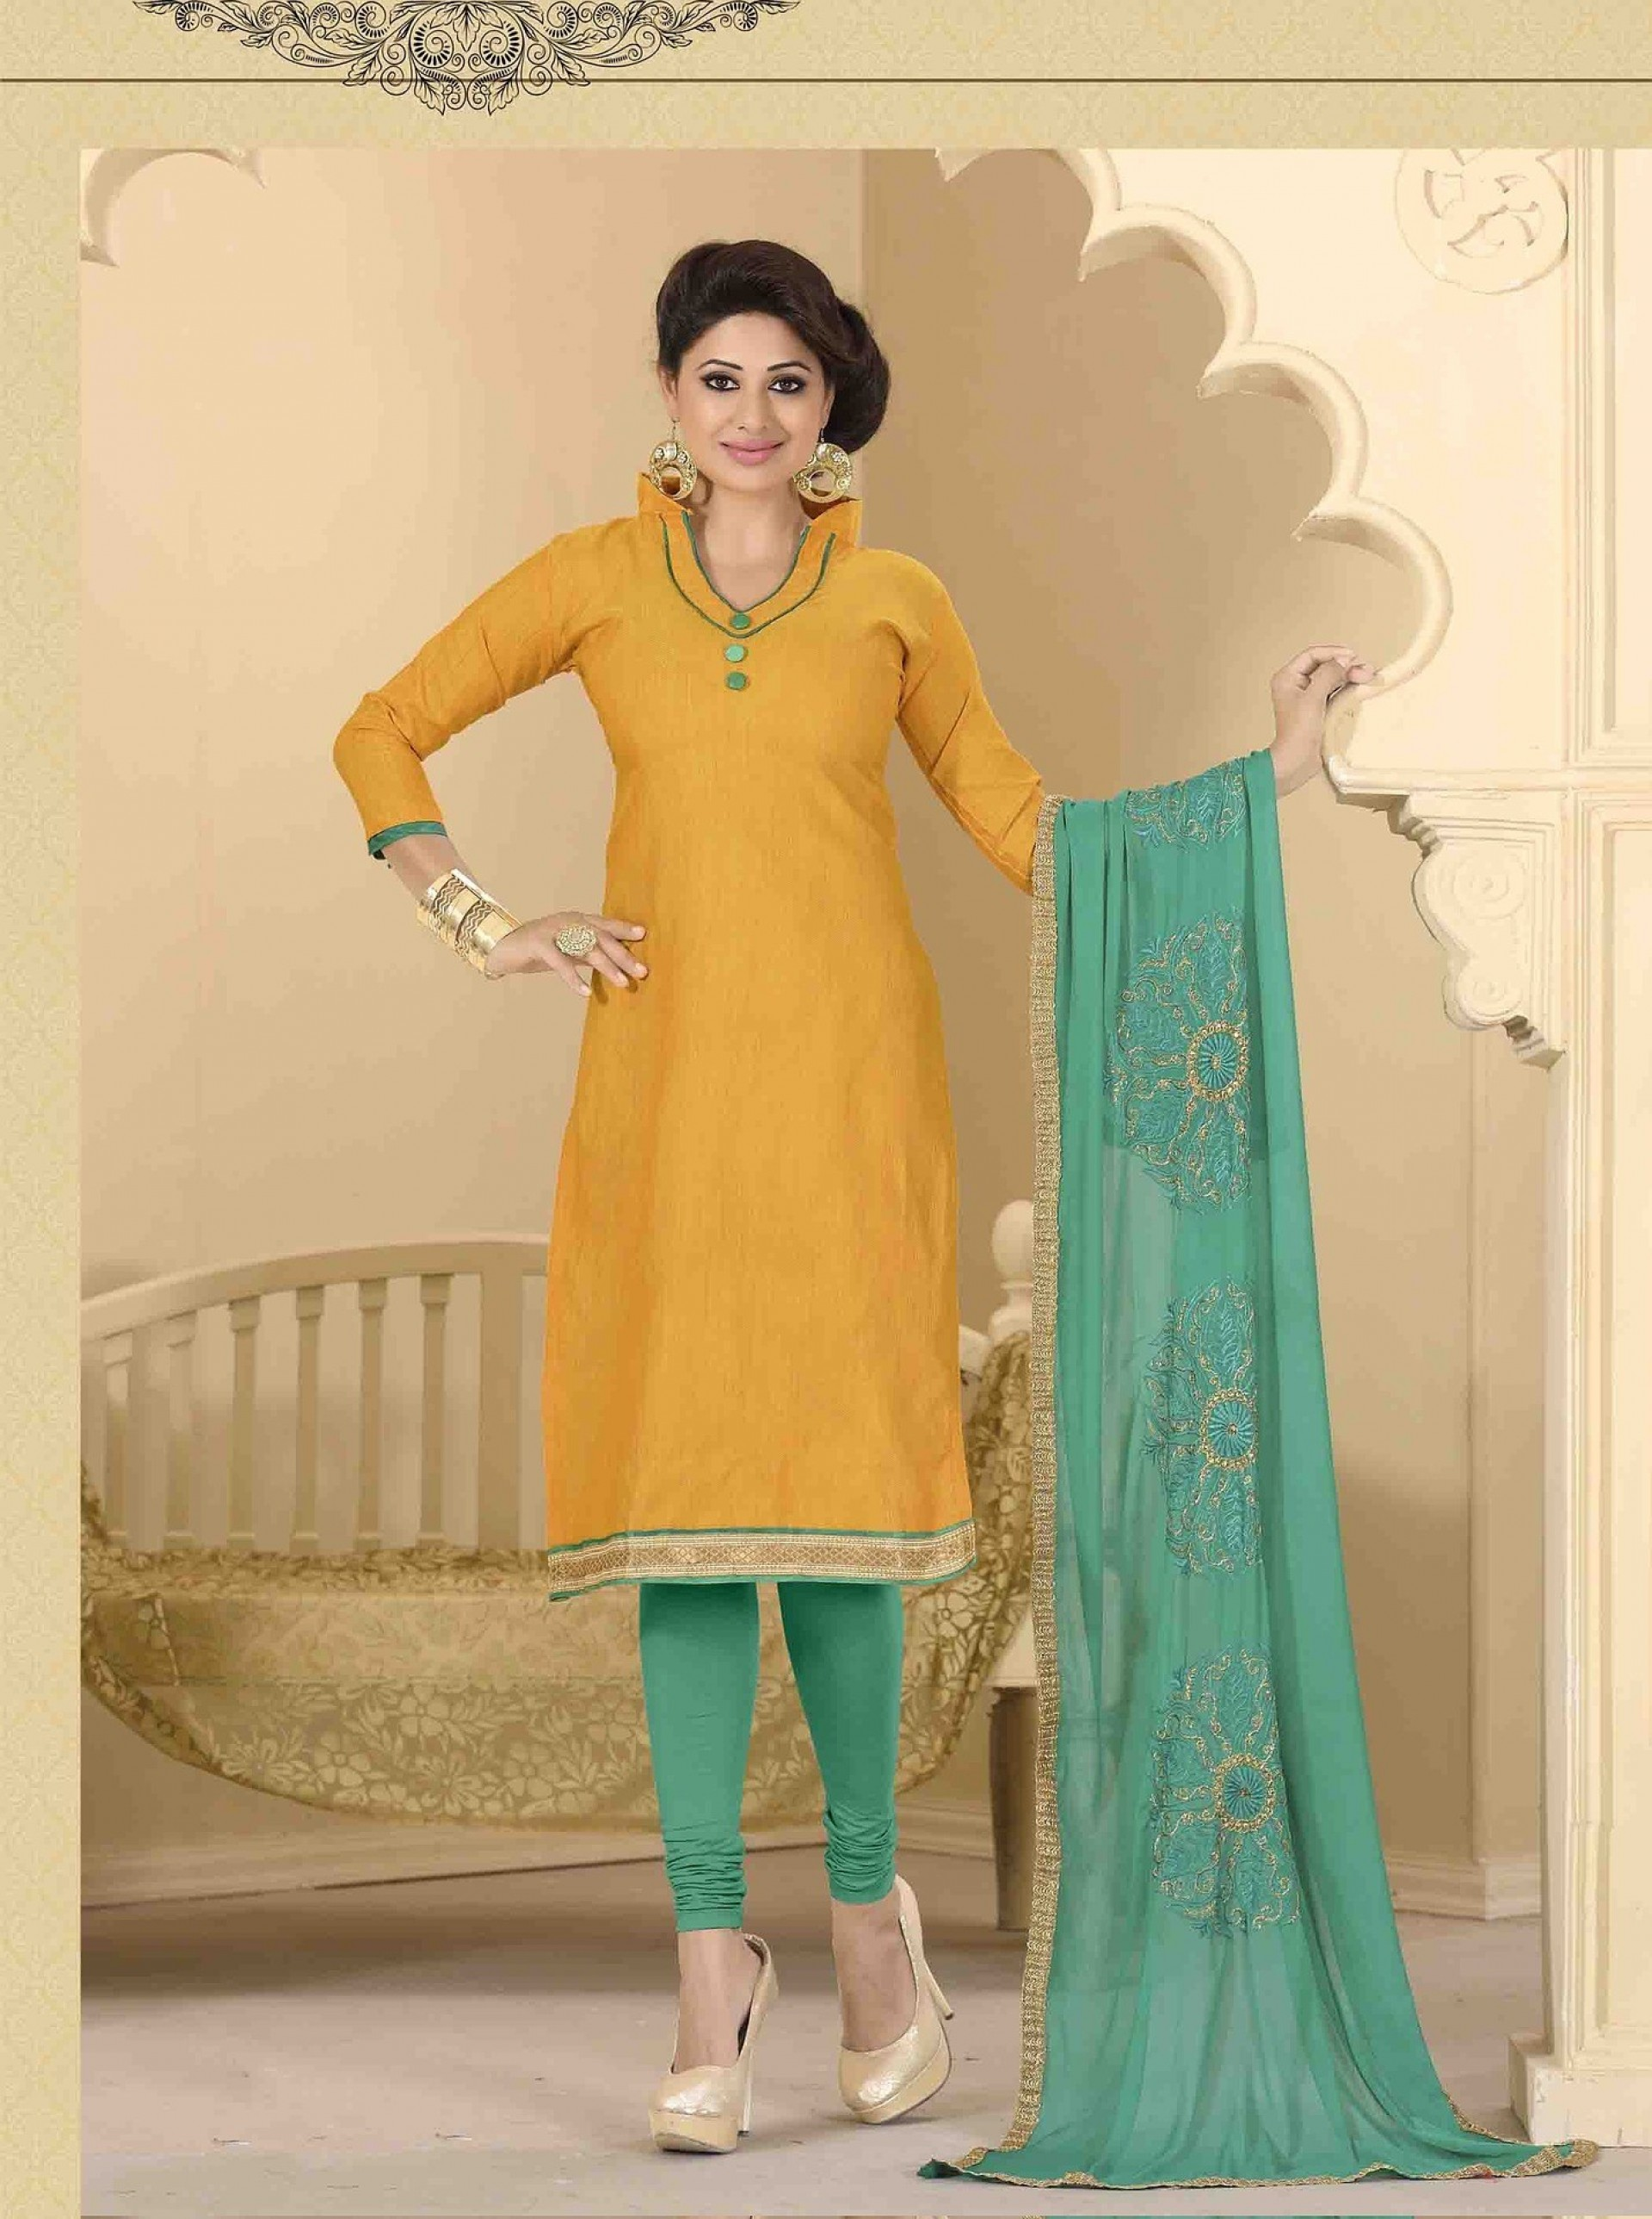 011 Salwar Kameez 846702 1920 Essay On My Favourite Dress Sensational 1920